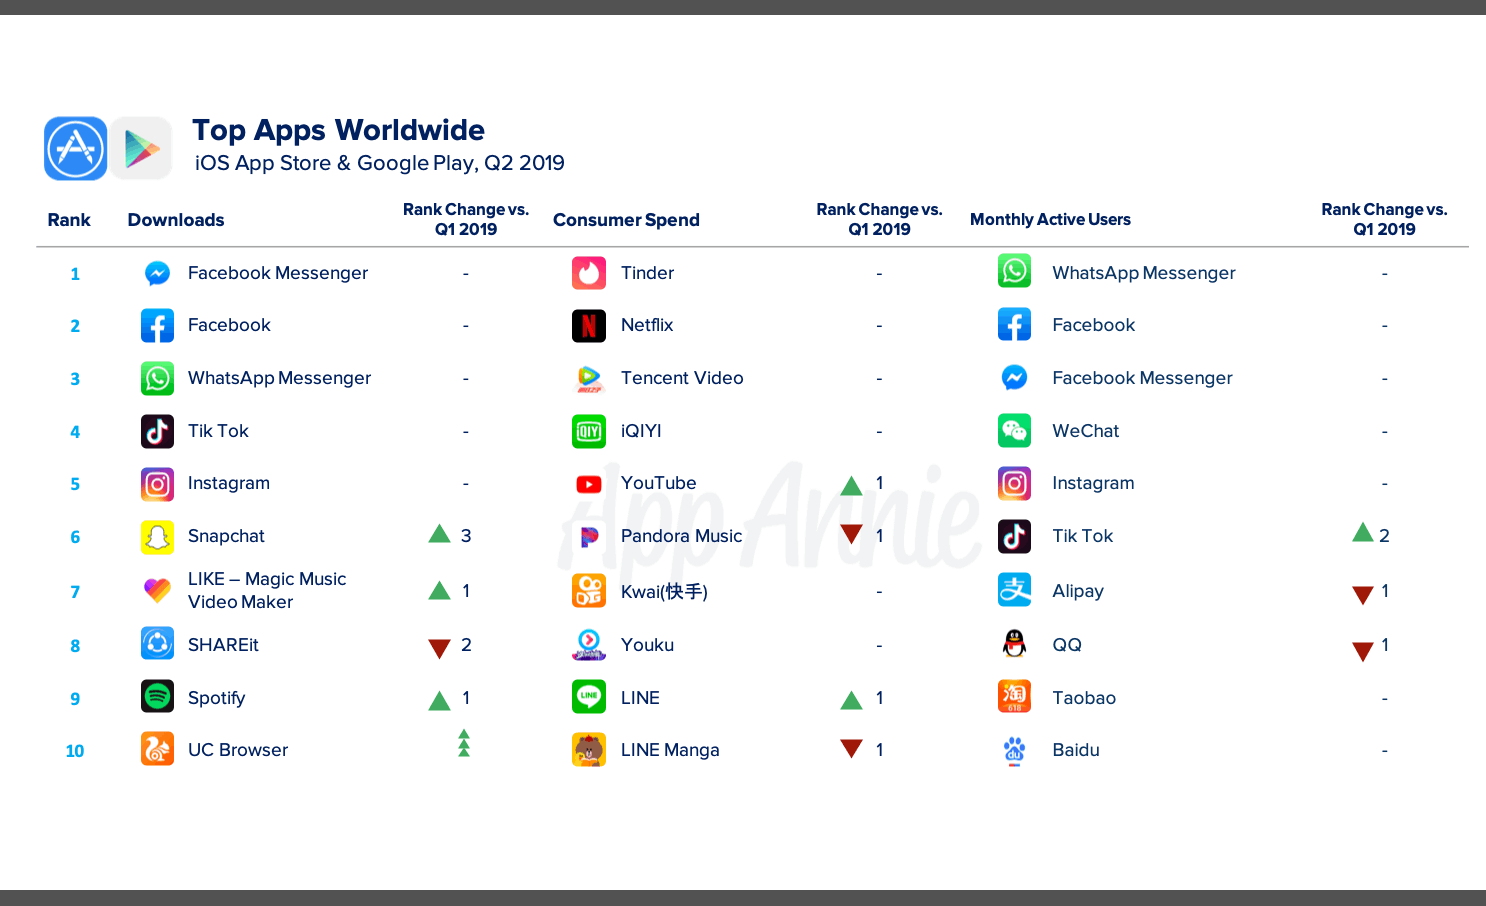 Report: Messenger and Facebook rank the highest in worldwide